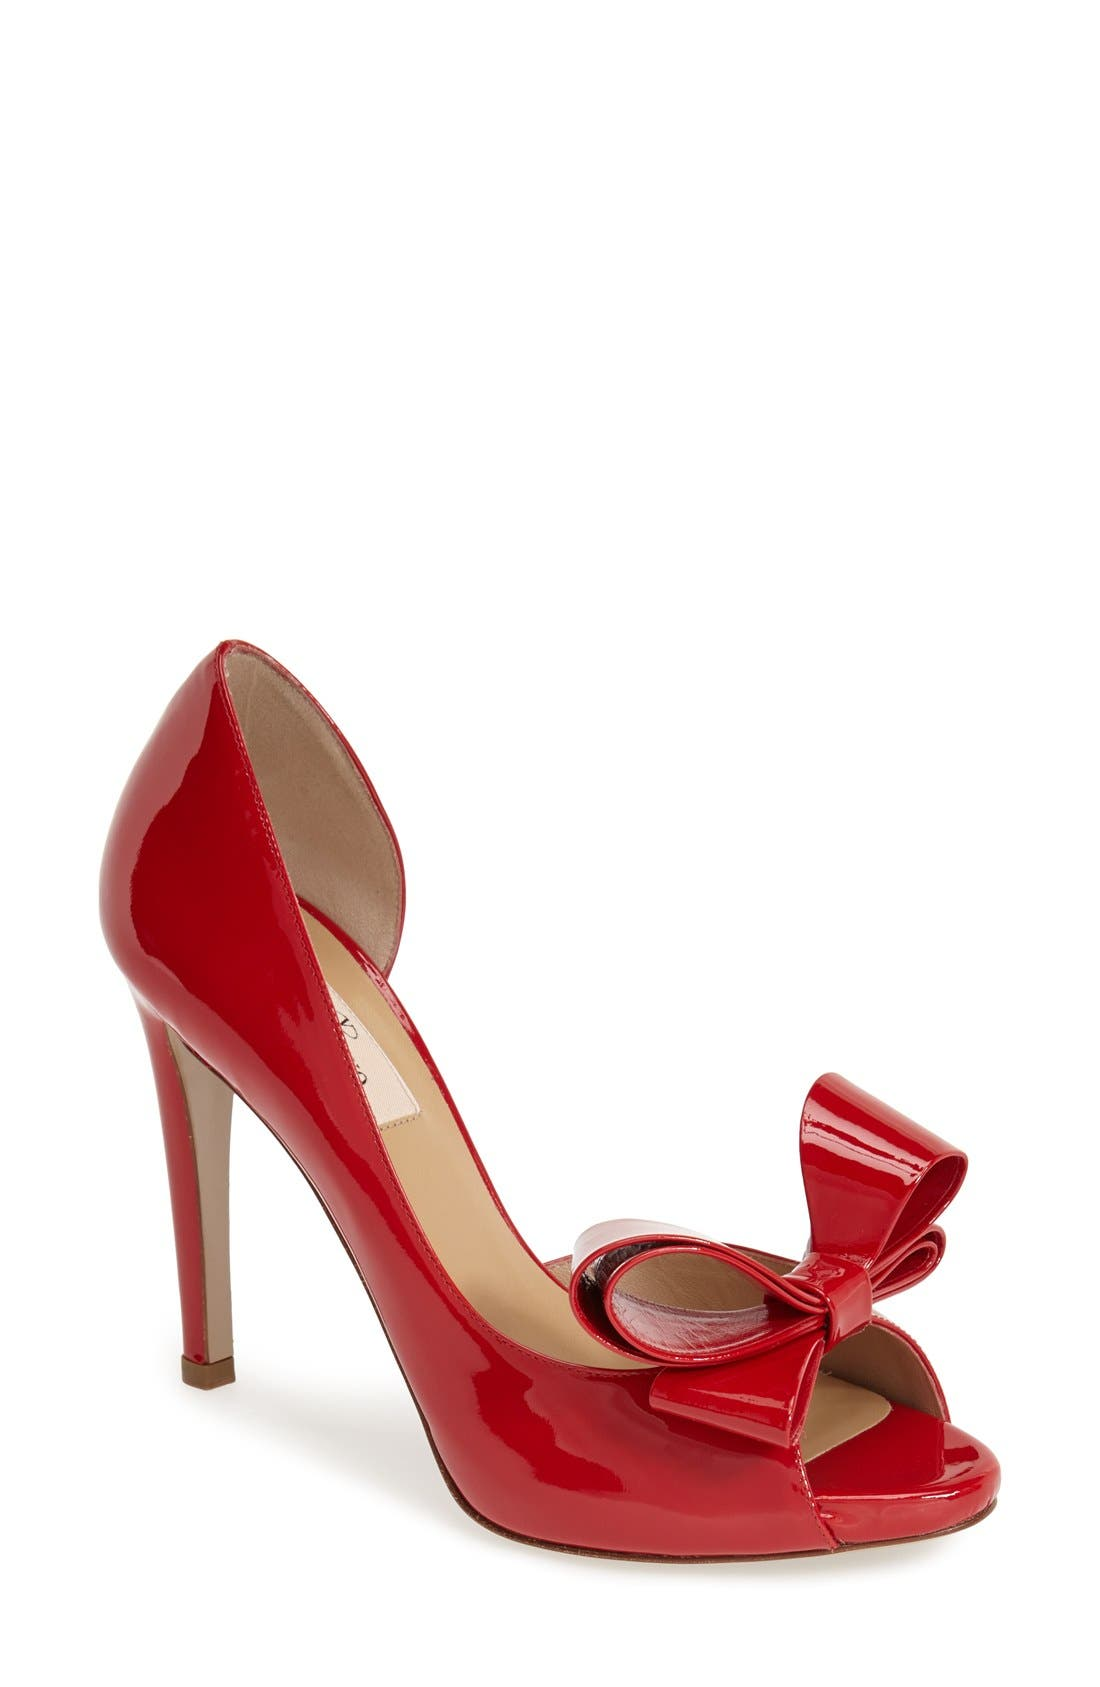 Alternate Image 1 Selected - VALENTINO GARAVANI Couture Bow d'Orsay Pump (Women)